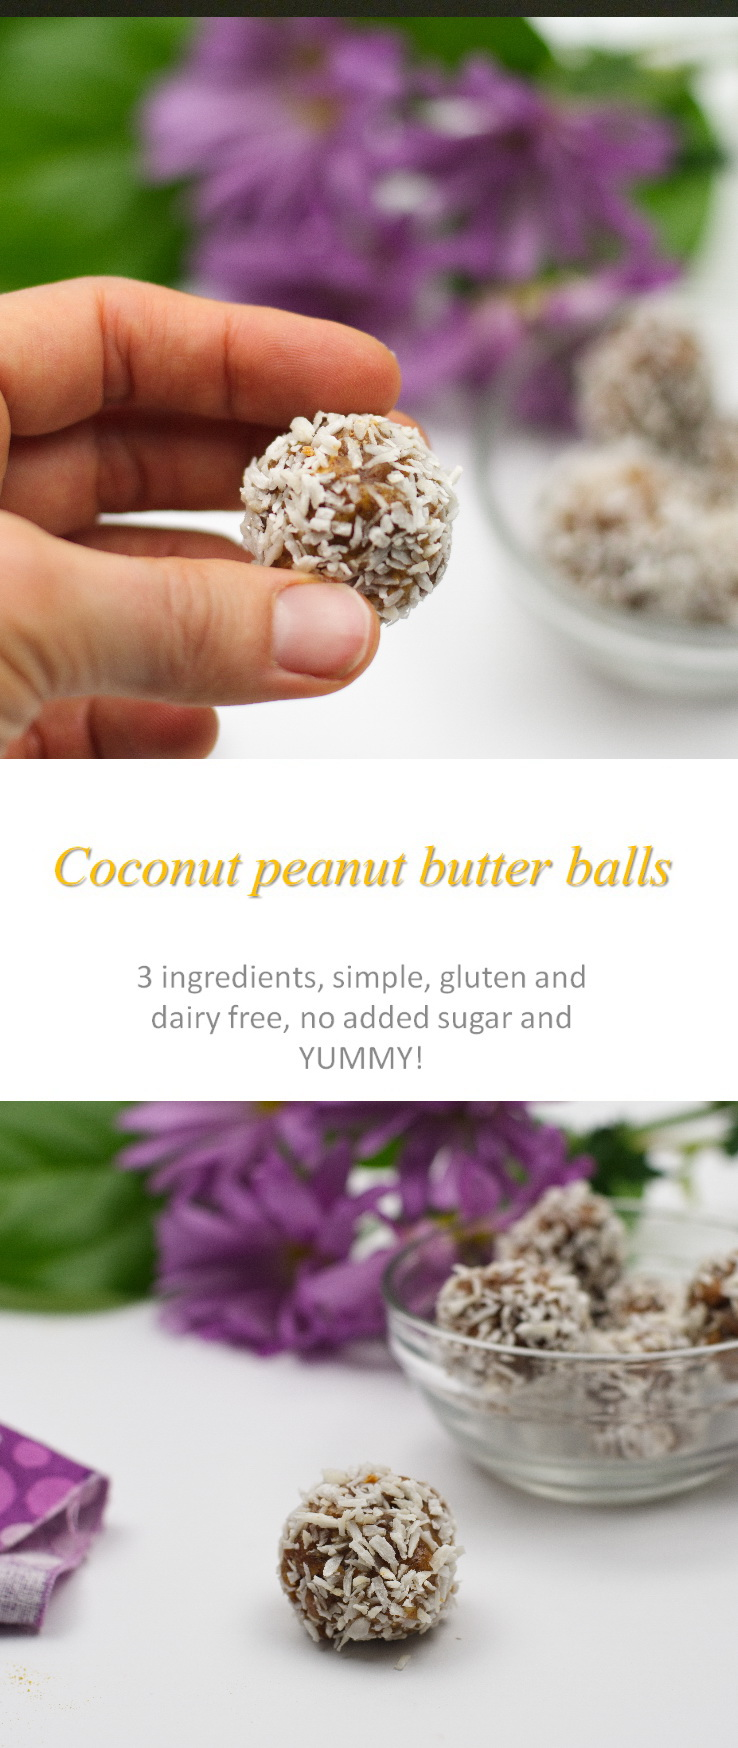 A yummy, simple recipe that has only 3 ingredients - peanut butter, raisins and coconut (with a little vanilla). These coconut peanut butter balls are really easy, no added sugar, so healthy! #peanutbutter